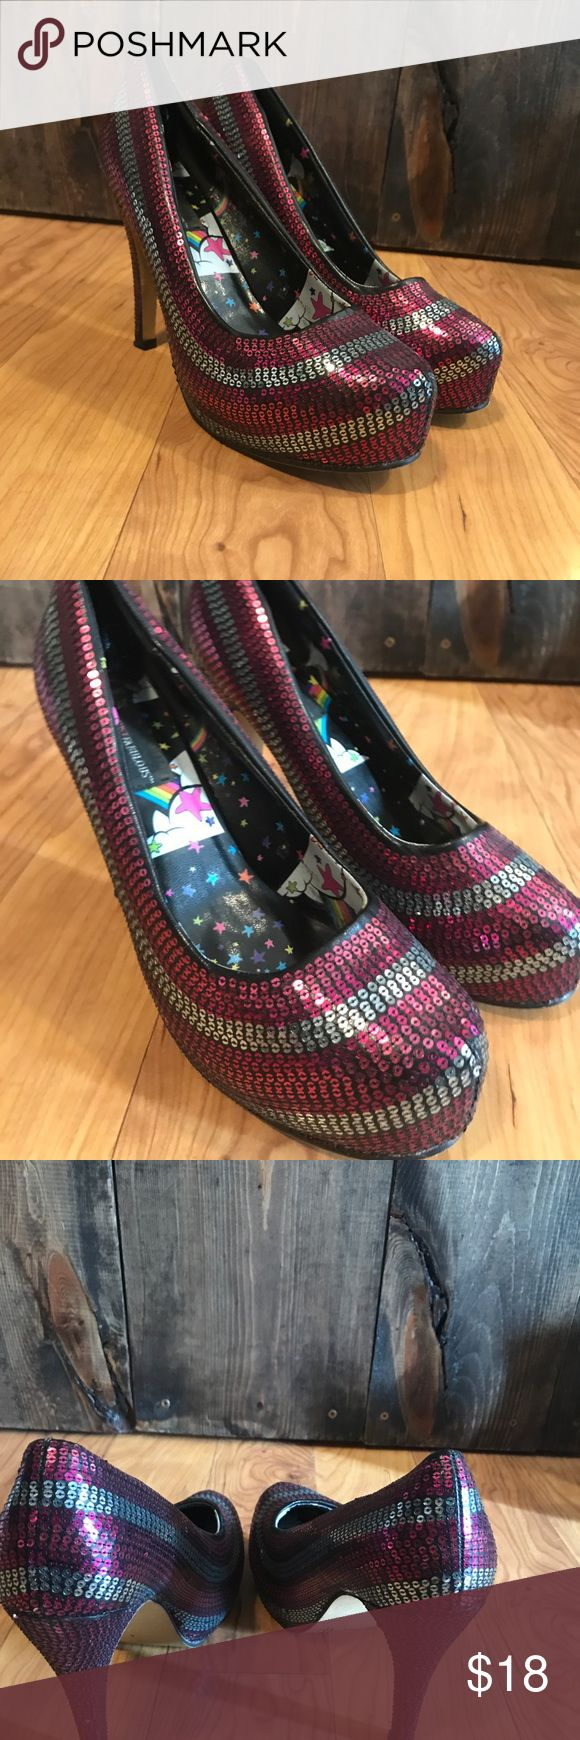 💥GUC-Iron Fist Sequins Striped Platform Heels 💥GUC-Iron Fist Sequins Striped Platform Heels  These do show some signs of wear. Some Sequins is loose/missing very difficult to see when wearing.  Please see photos. Make an offer!  Fuchsia/silver color Iron Fist Shoes Platforms